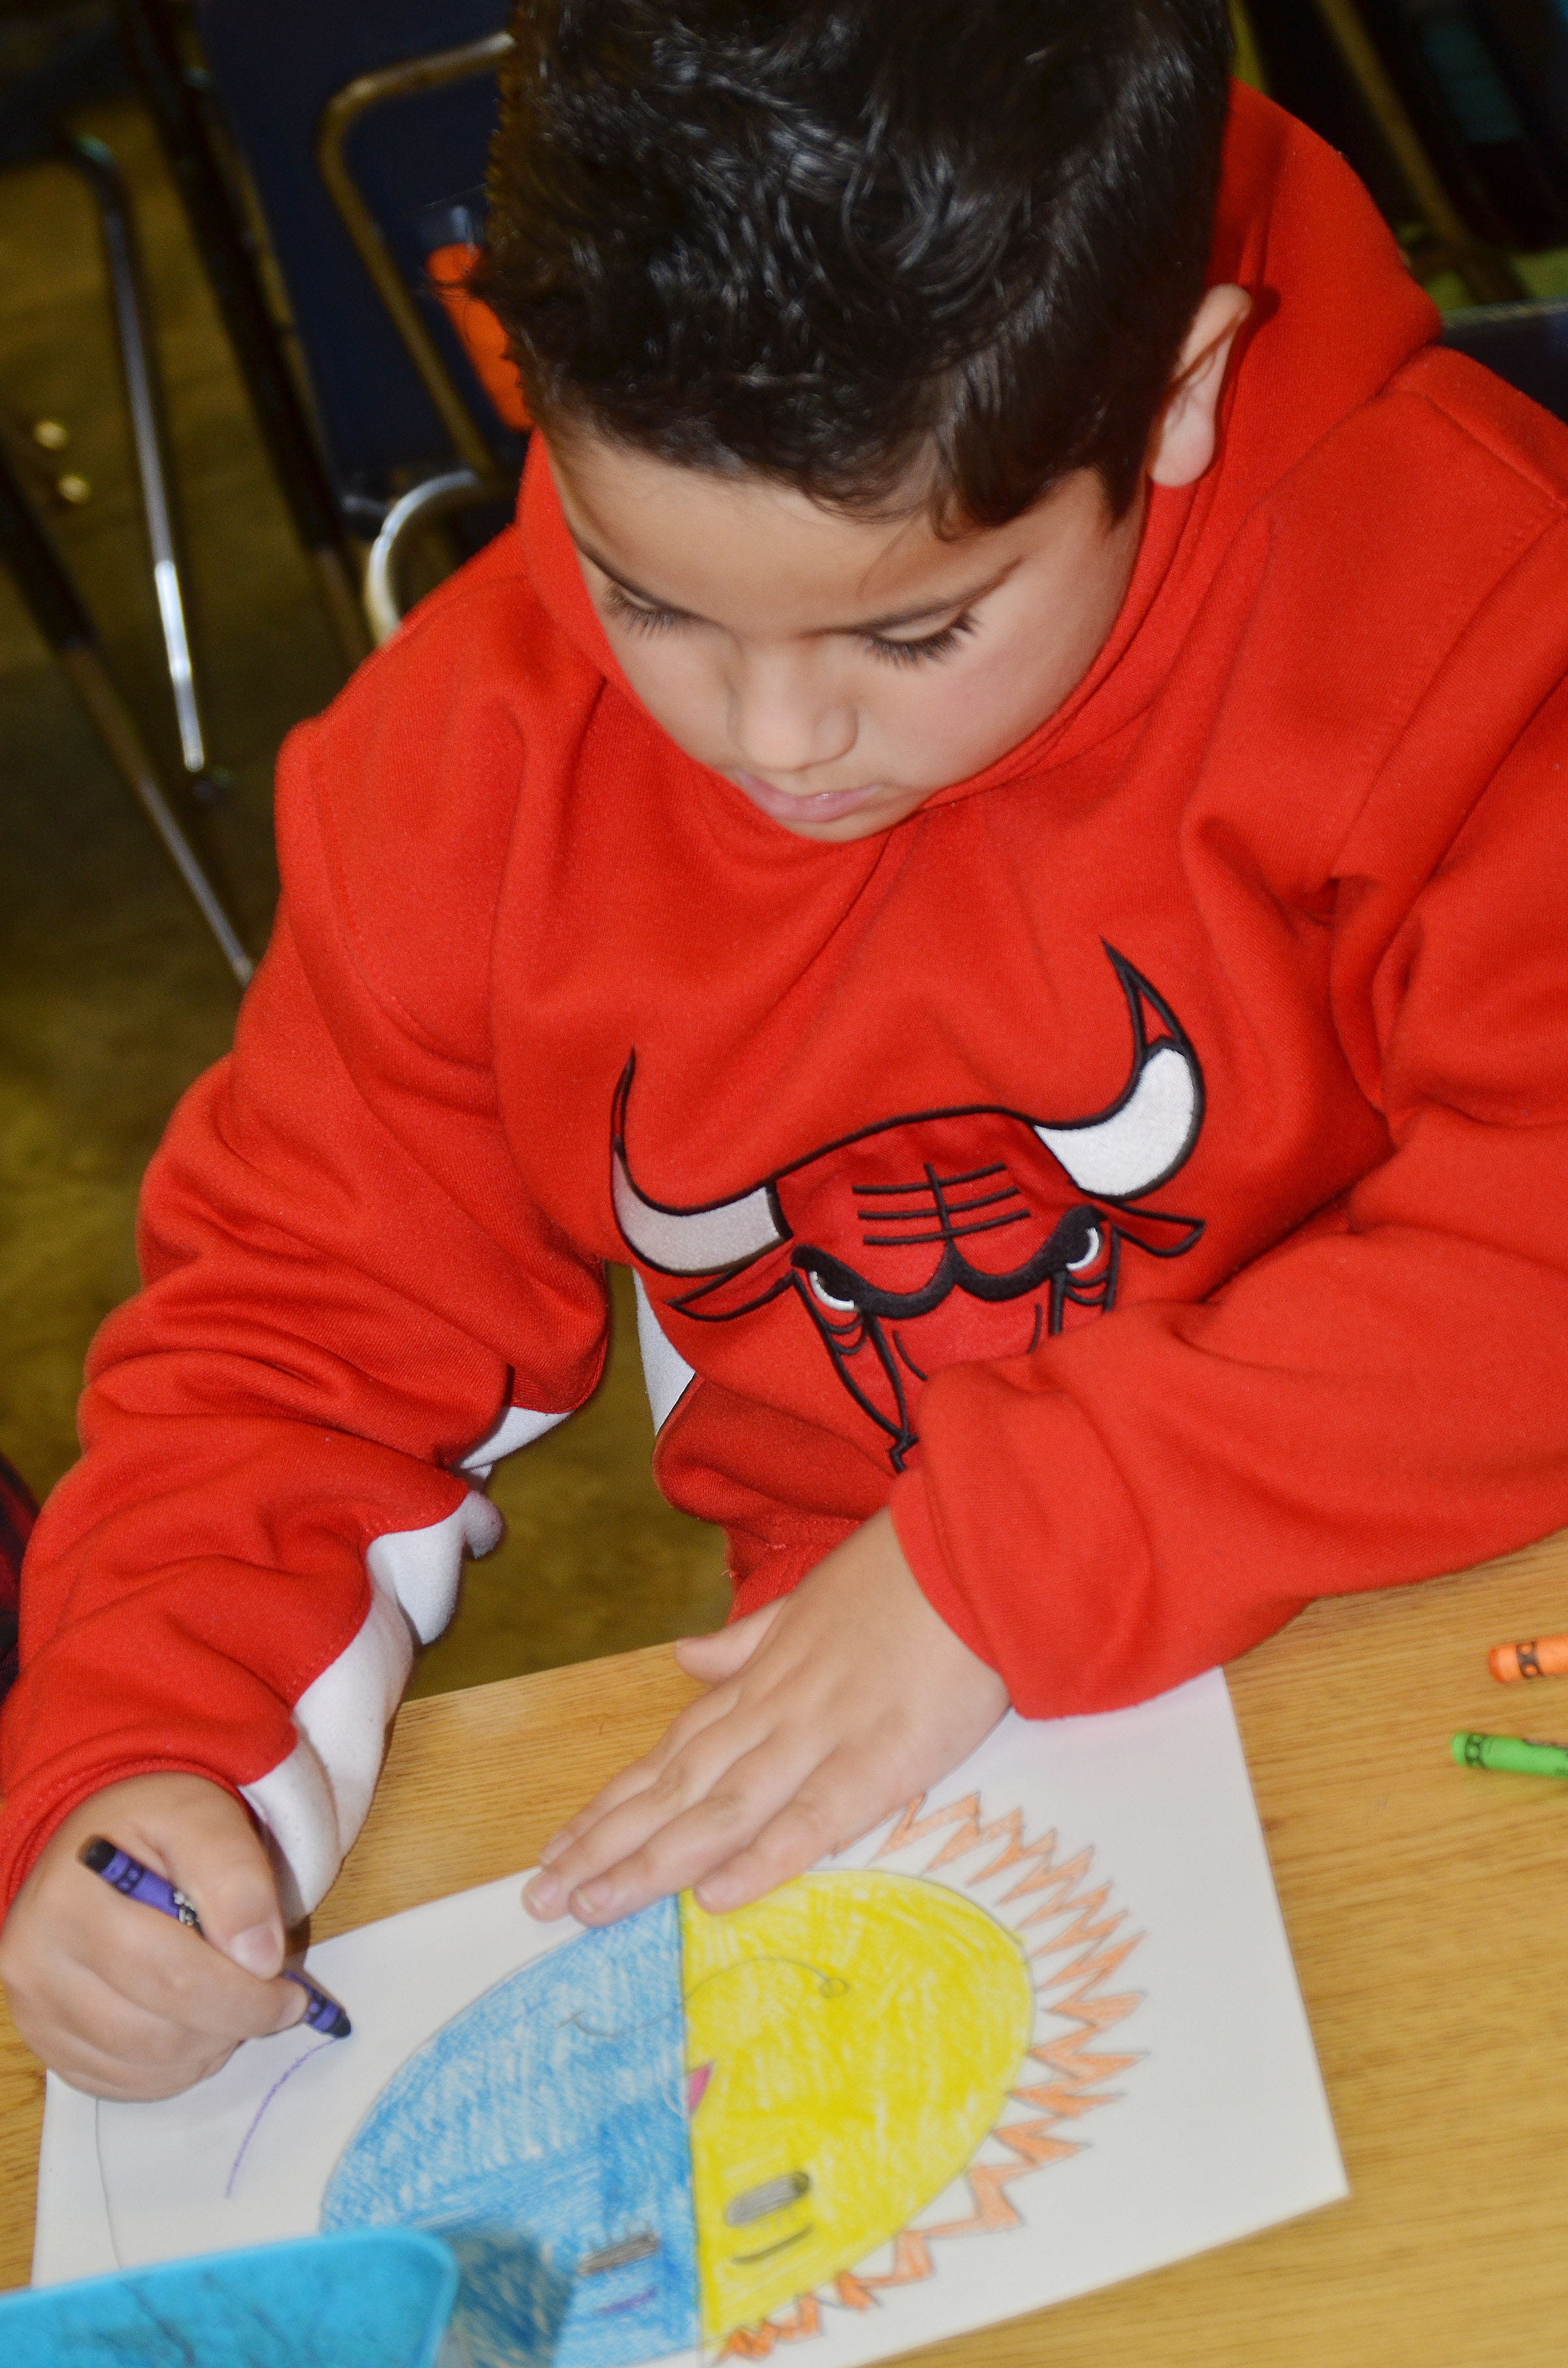 CES second-grader Nicholas Almeida colors his warm and cool color face.